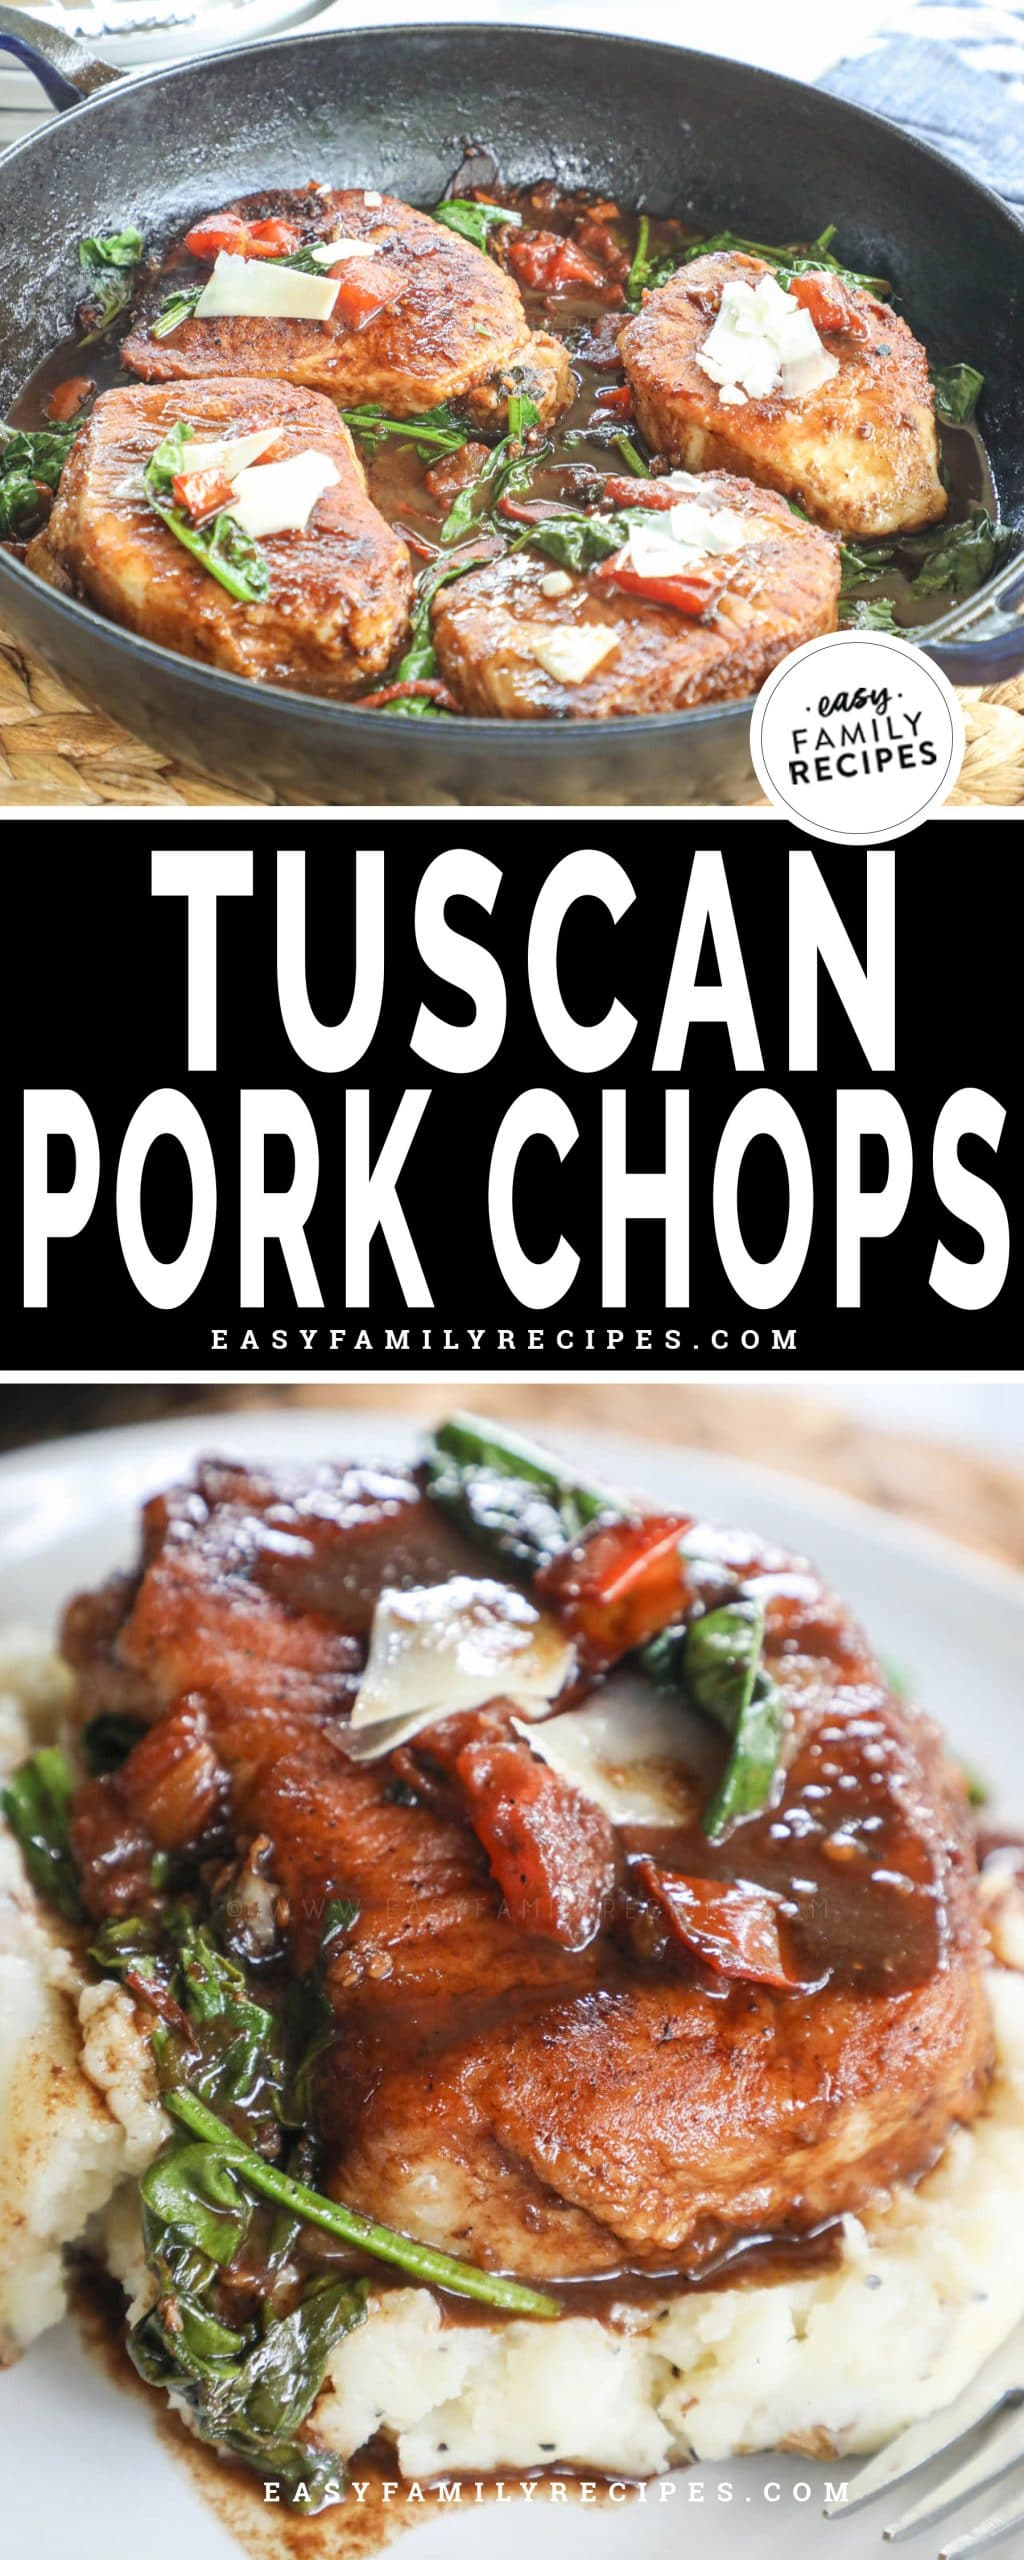 Tuscan Pork Chops cooked in a skillet with balsamic tomatoes and spinach